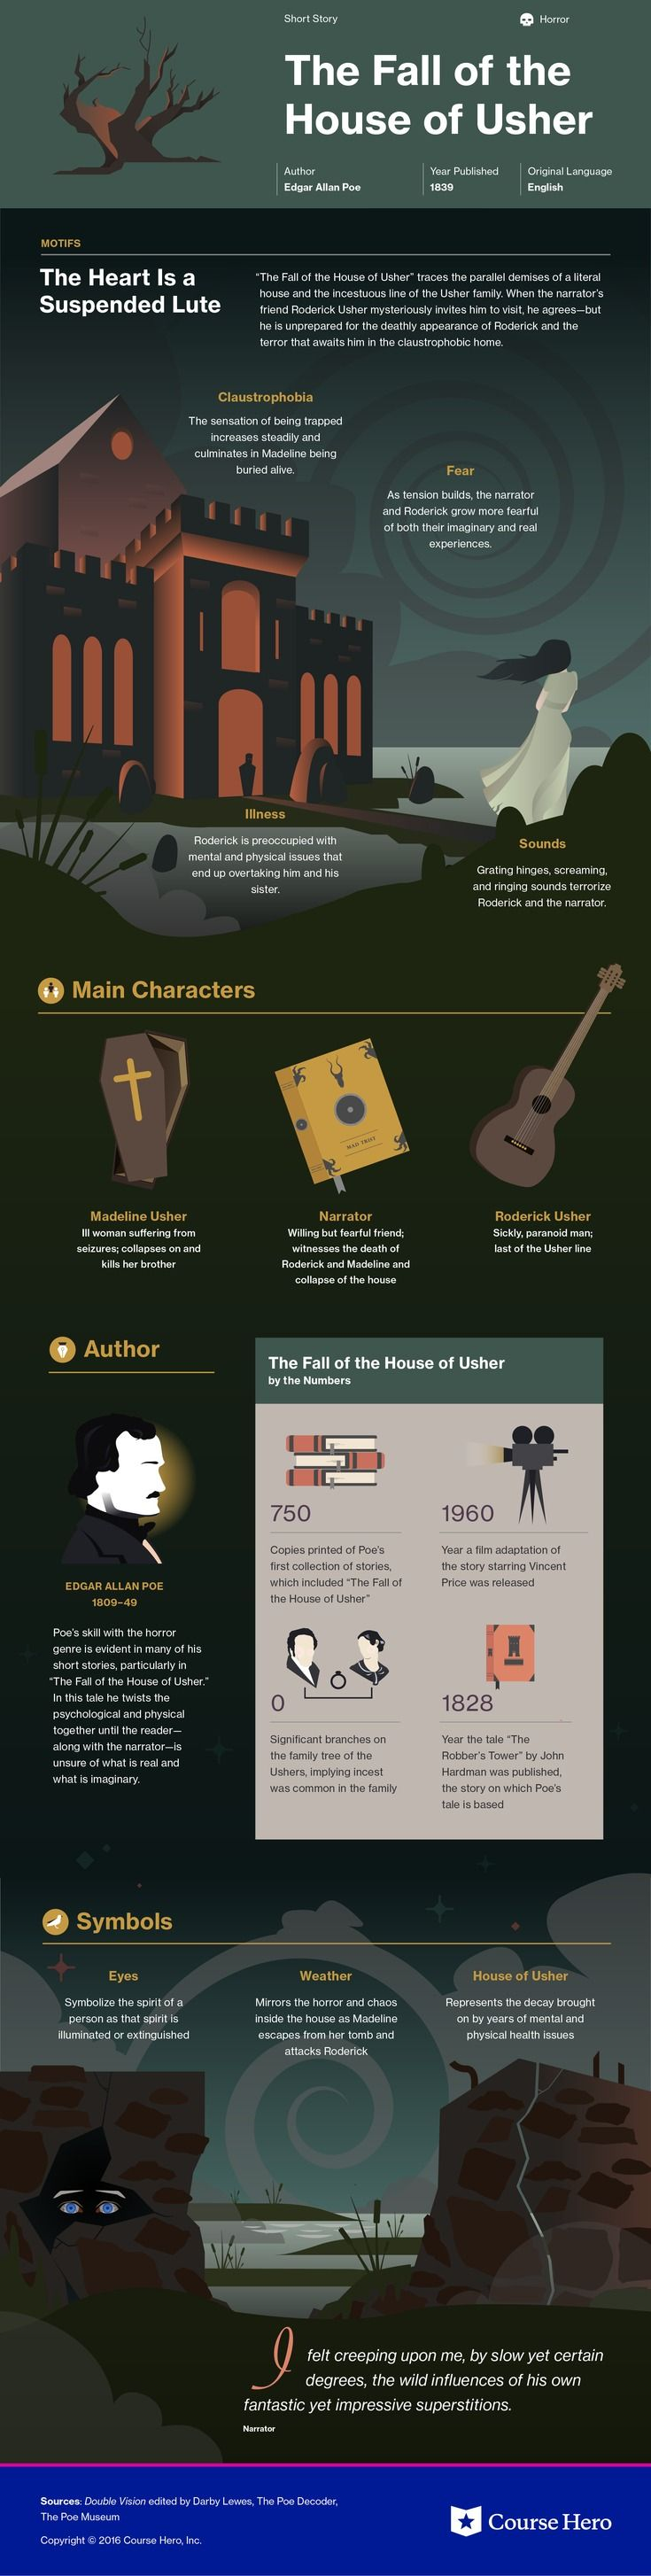 This @CourseHero infographic on The Fall of the House of Usher is both visually stunning and informative!